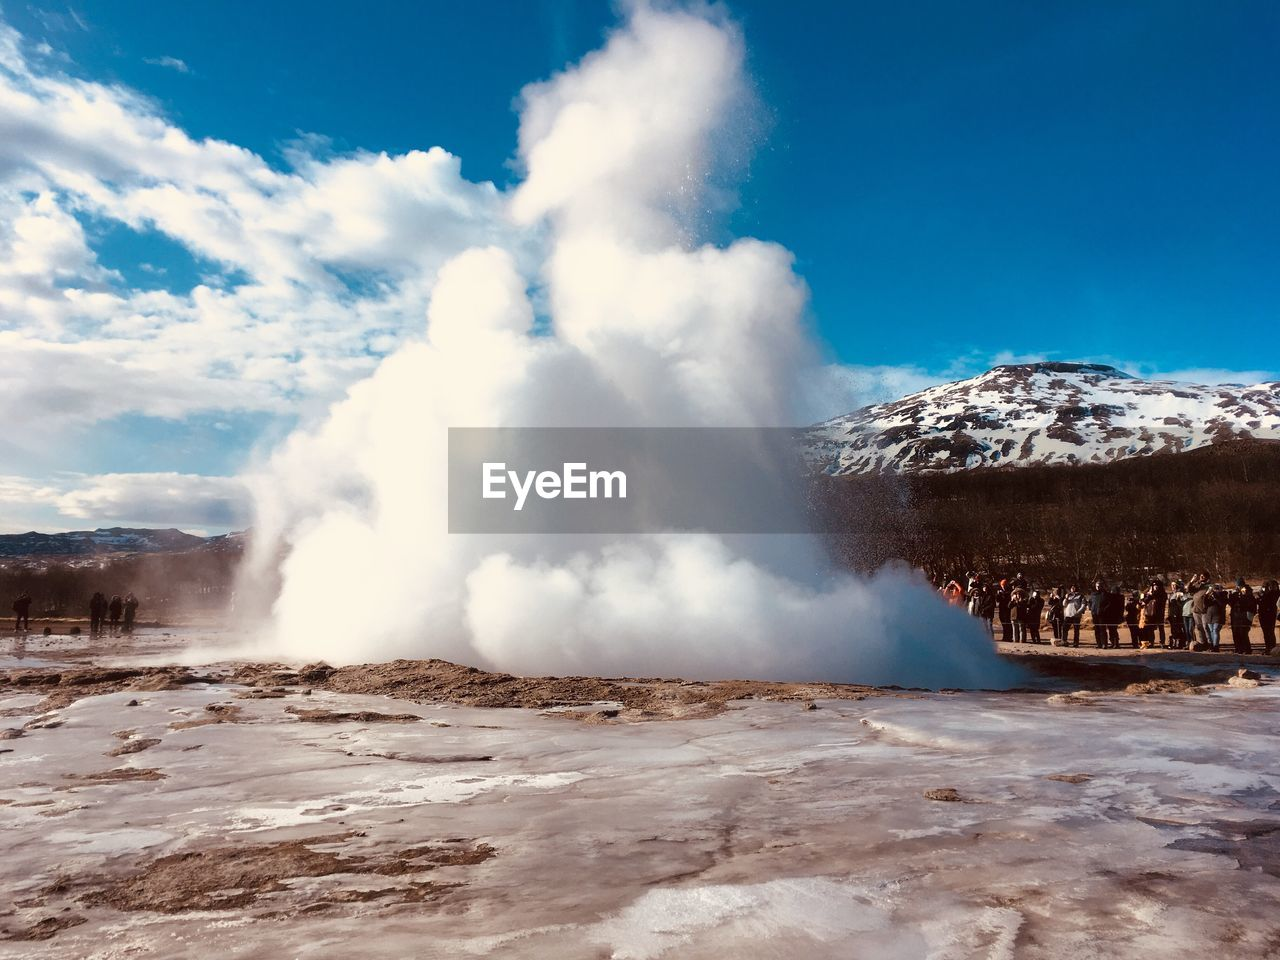 scenics - nature, sky, beauty in nature, power in nature, geology, physical geography, non-urban scene, hot spring, cloud - sky, geyser, water, heat - temperature, mountain, steam, power, nature, motion, day, tourism, no people, outdoors